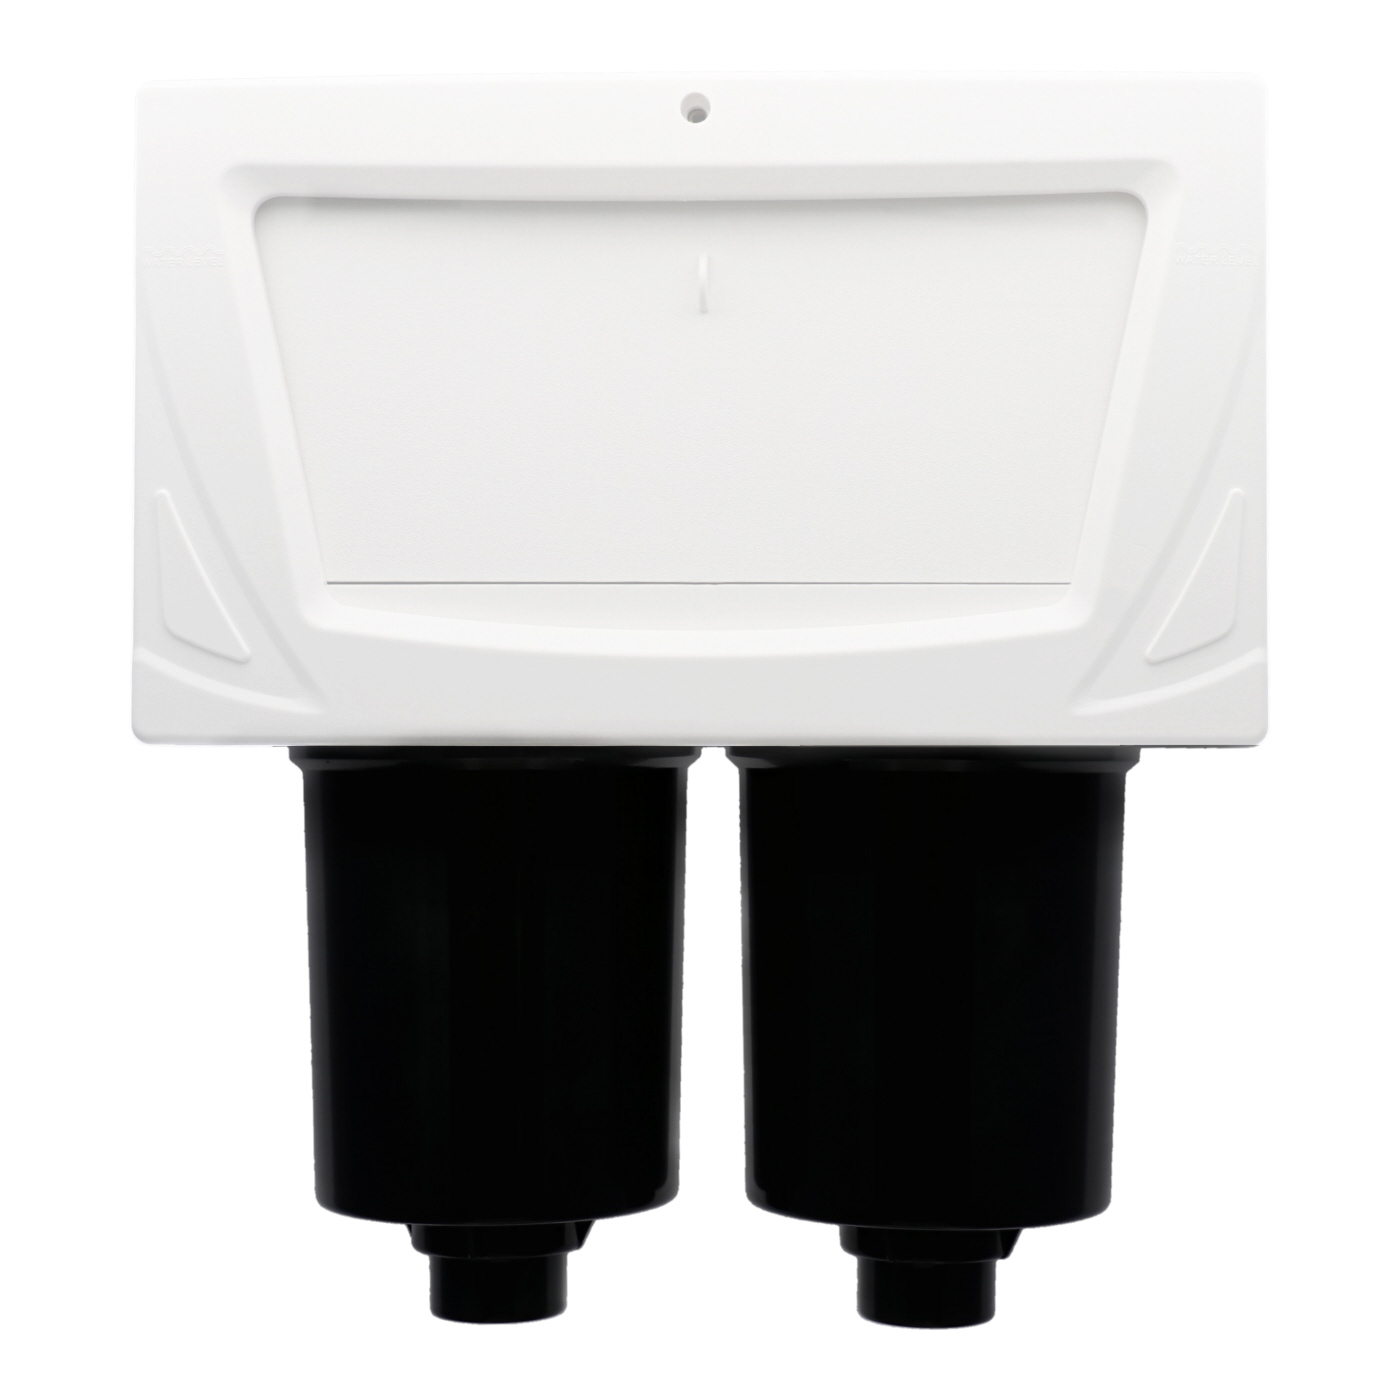 Double filter skimmer for 1.5 inch pipes